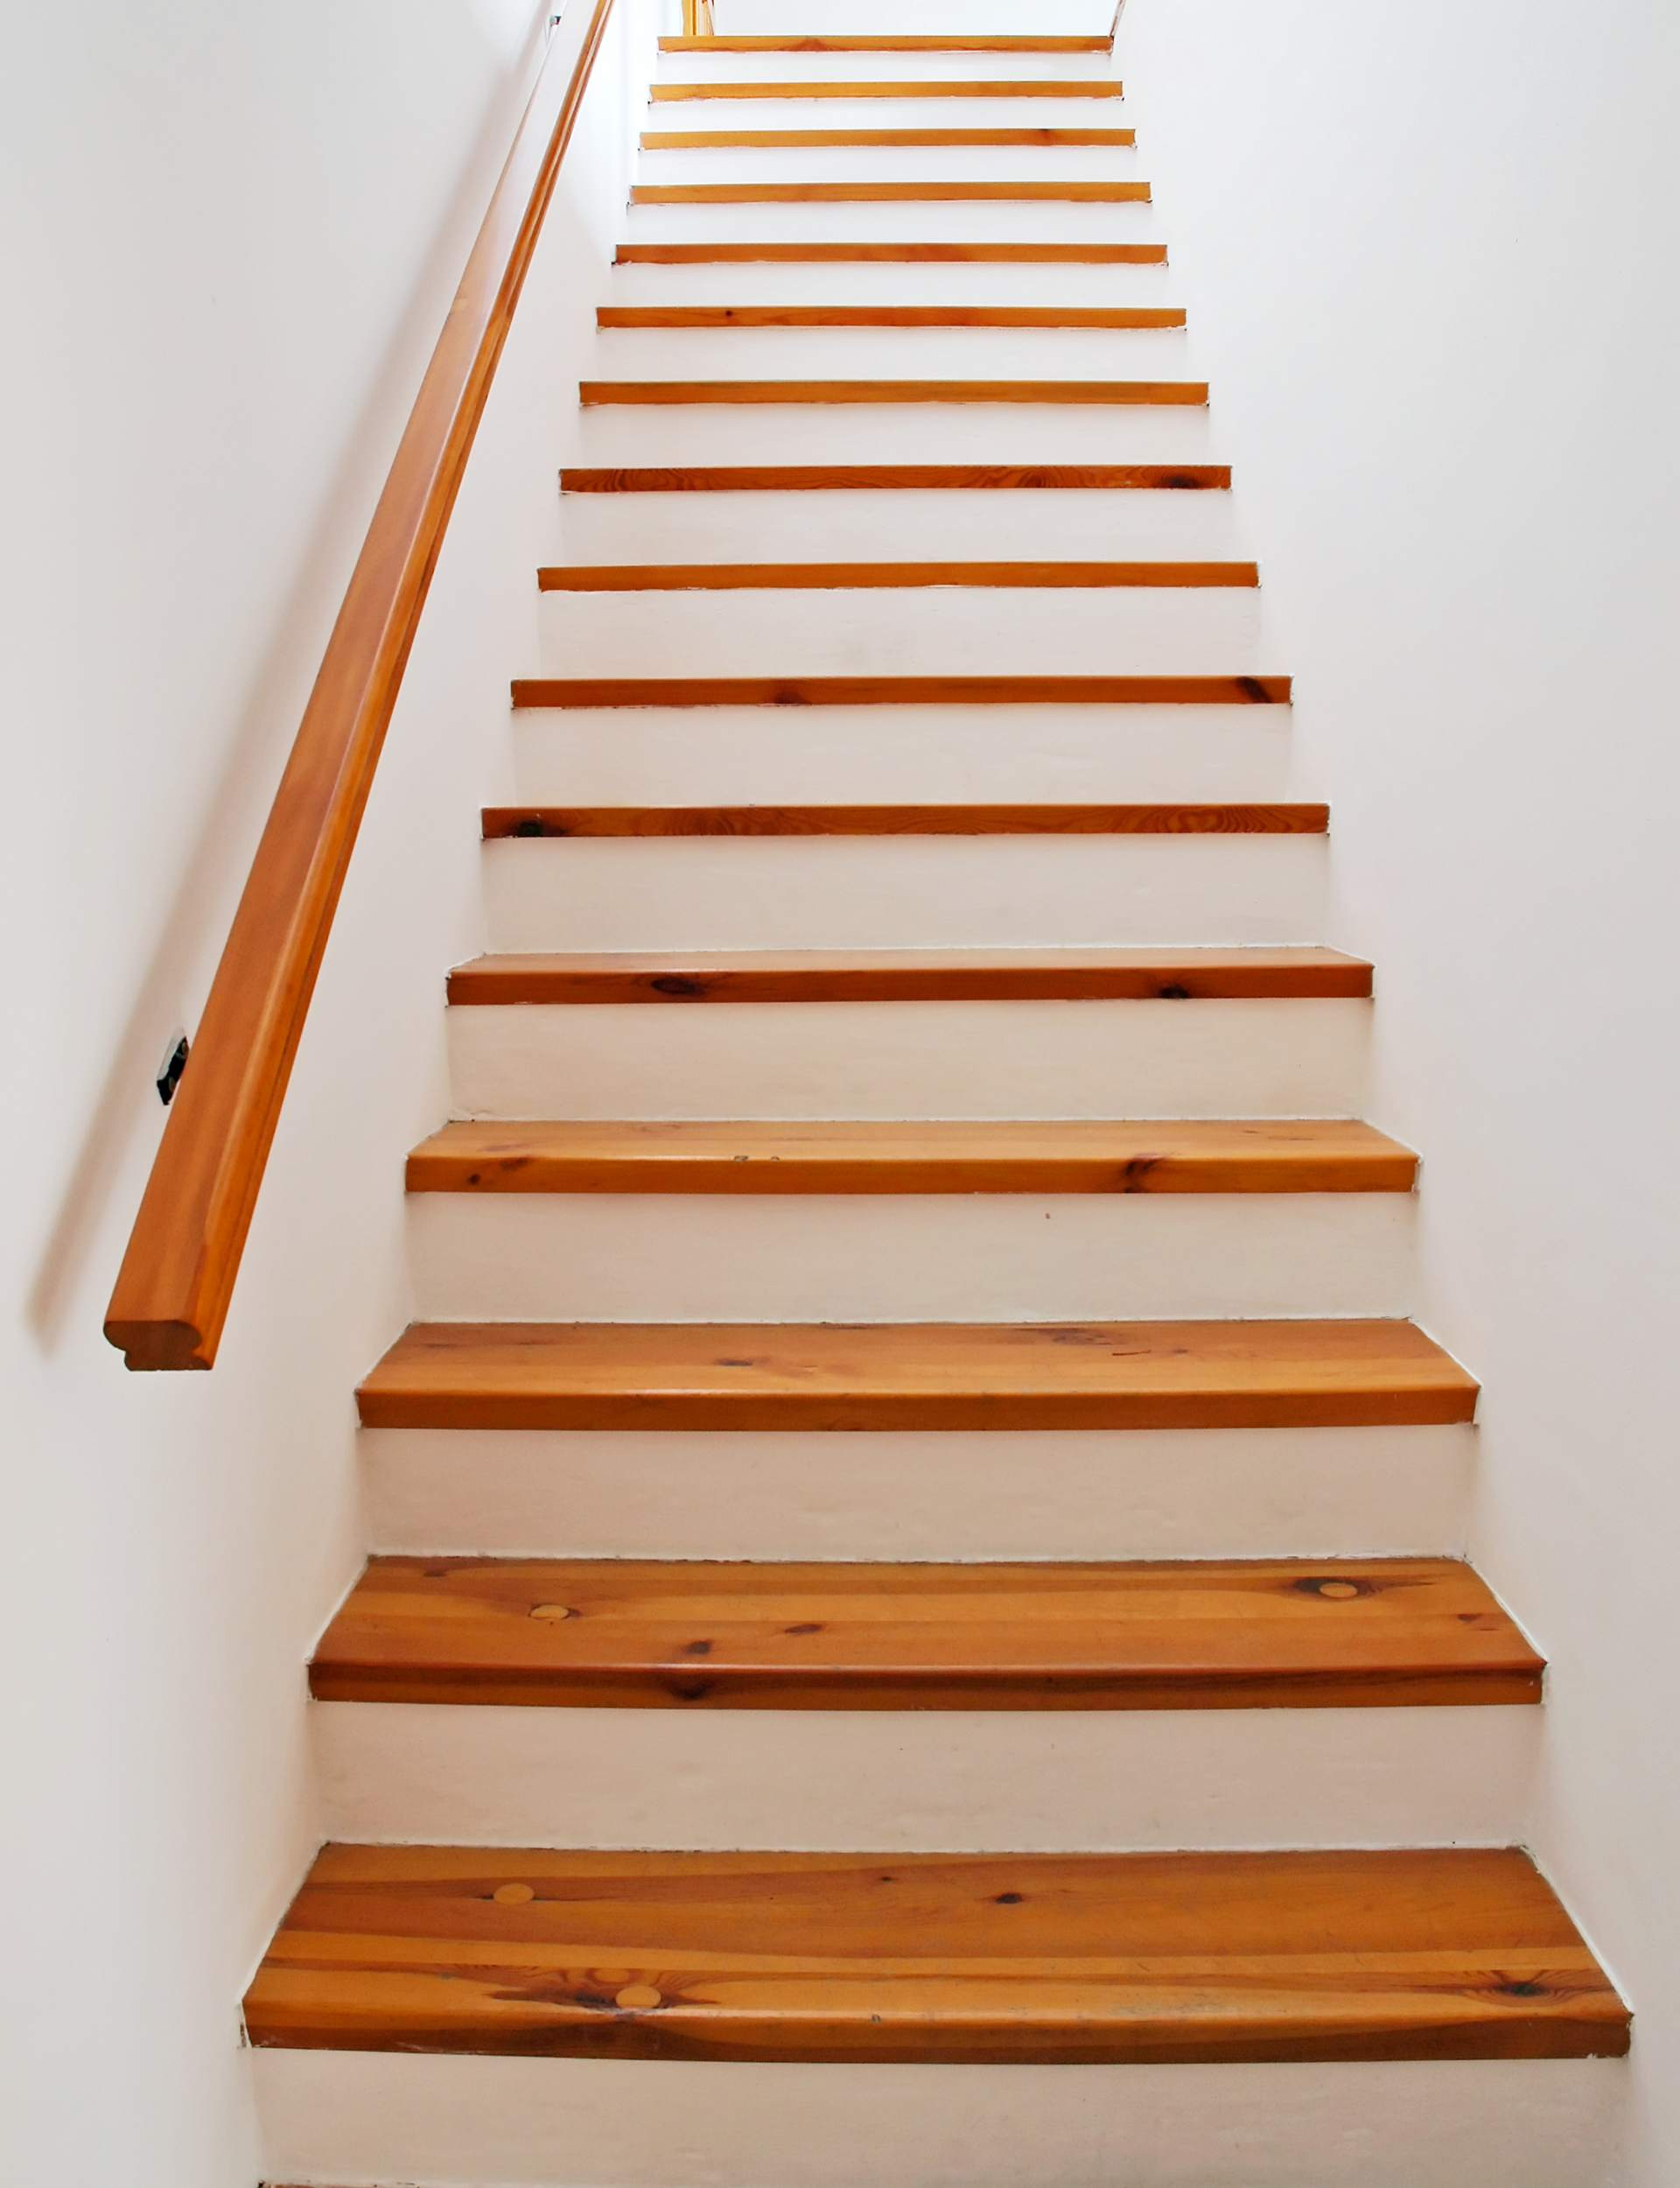 David gilbert escaliers 100 bois photos - Escalier helicoidal en bois ...